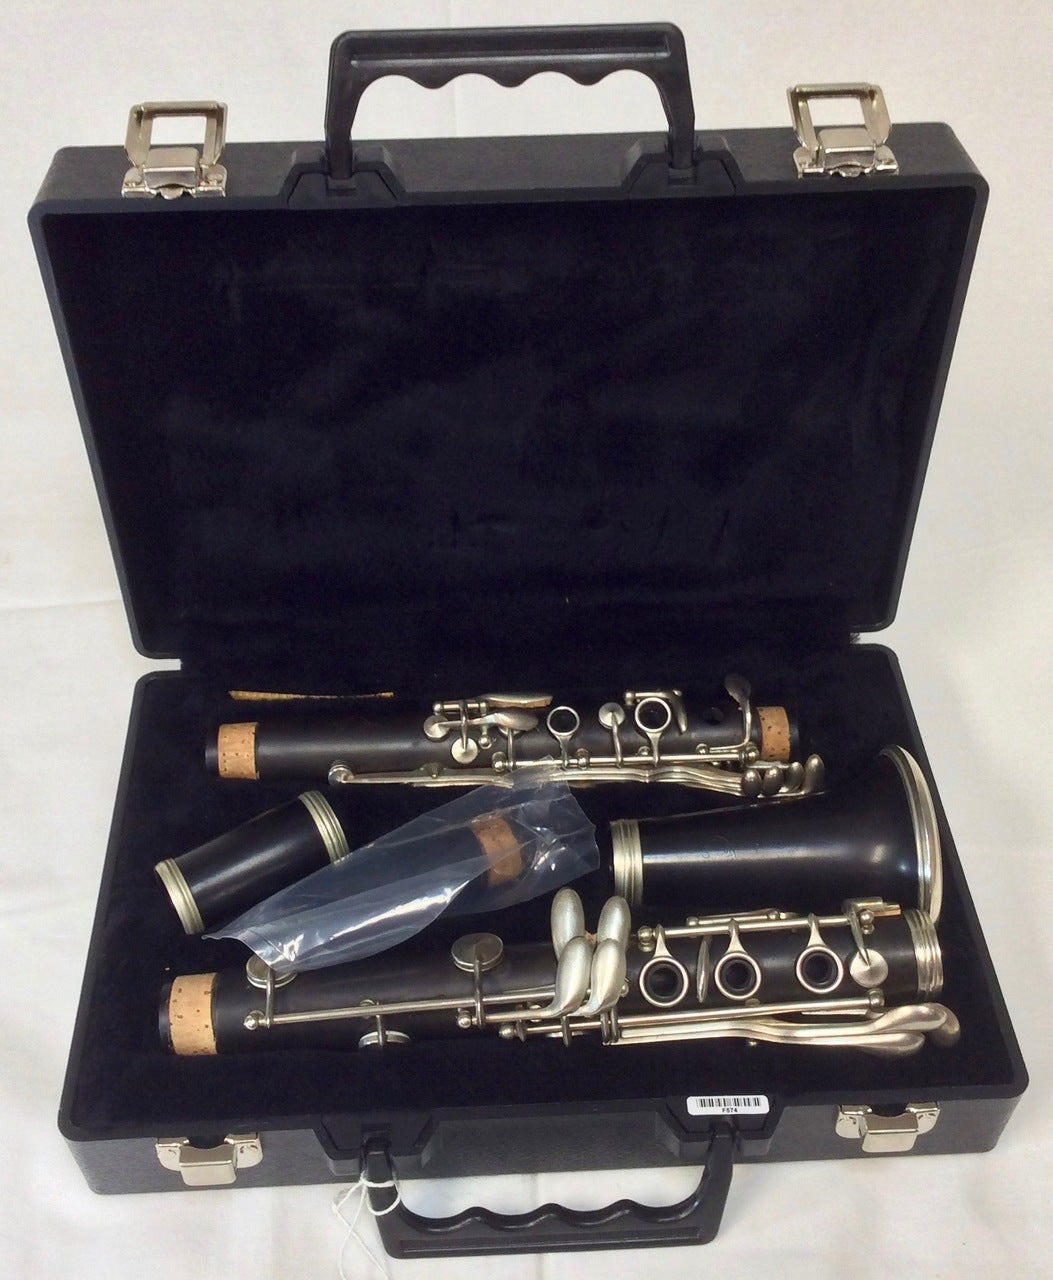 Pre-owned Dupont Paris France Wood Clarinet - Serviced & ready to play - F574 - Fornaszewski Music Store, Granite City IL 62040 - www.stanf.com